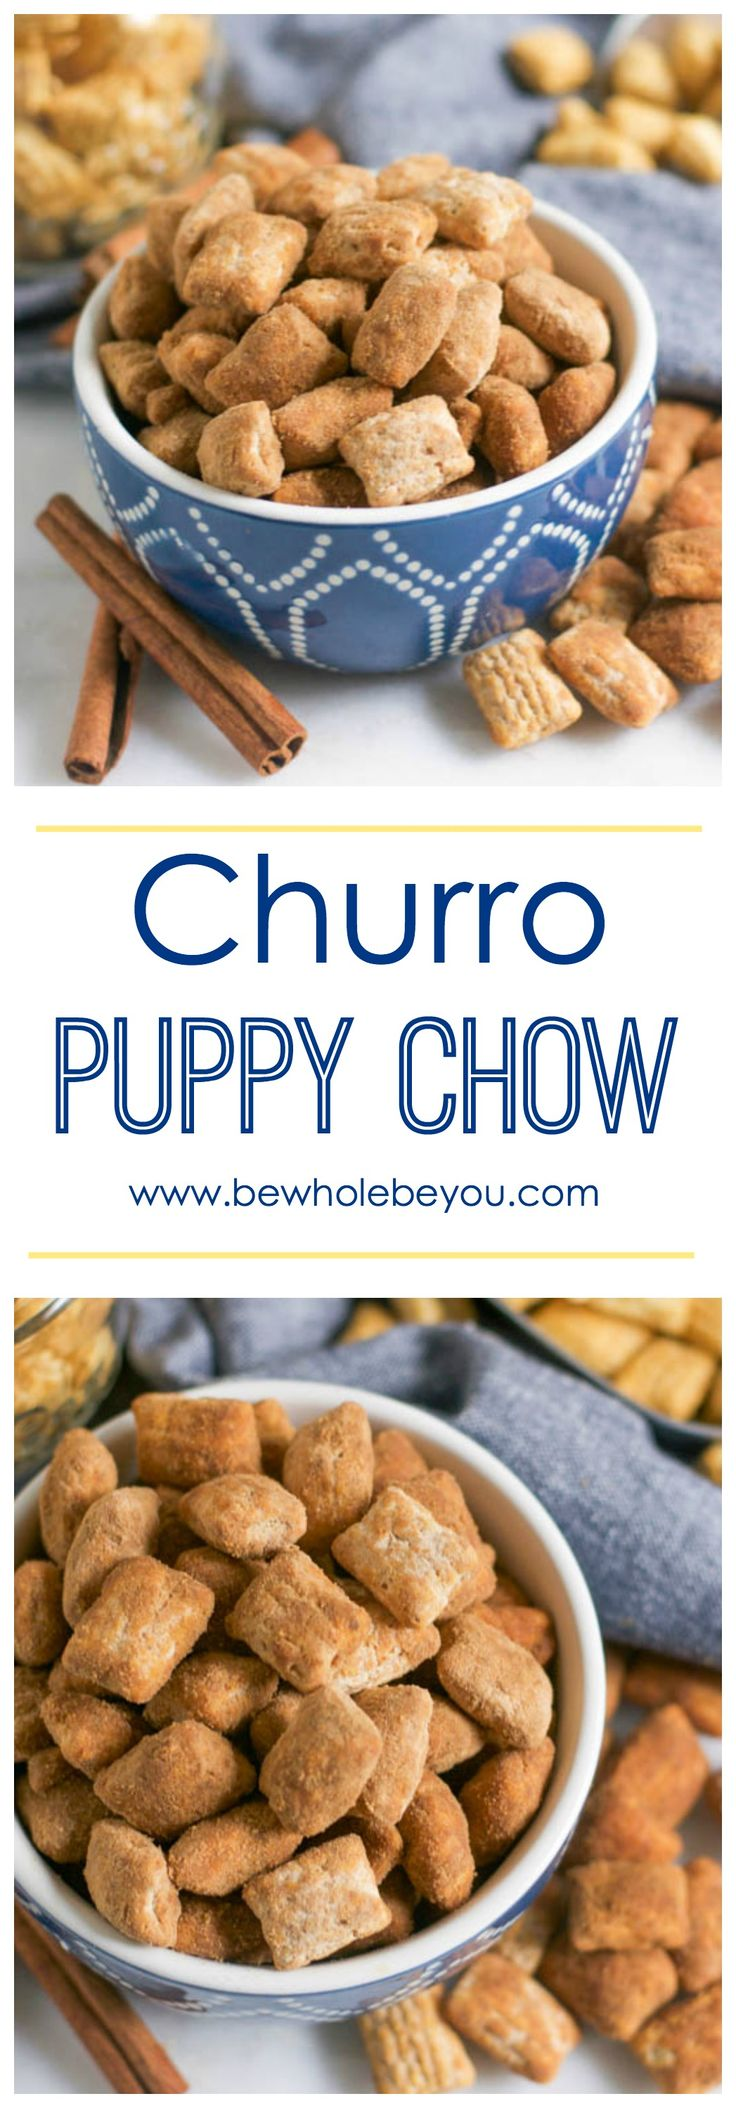 Churro Puppy Chow. Be Whole. Be You.